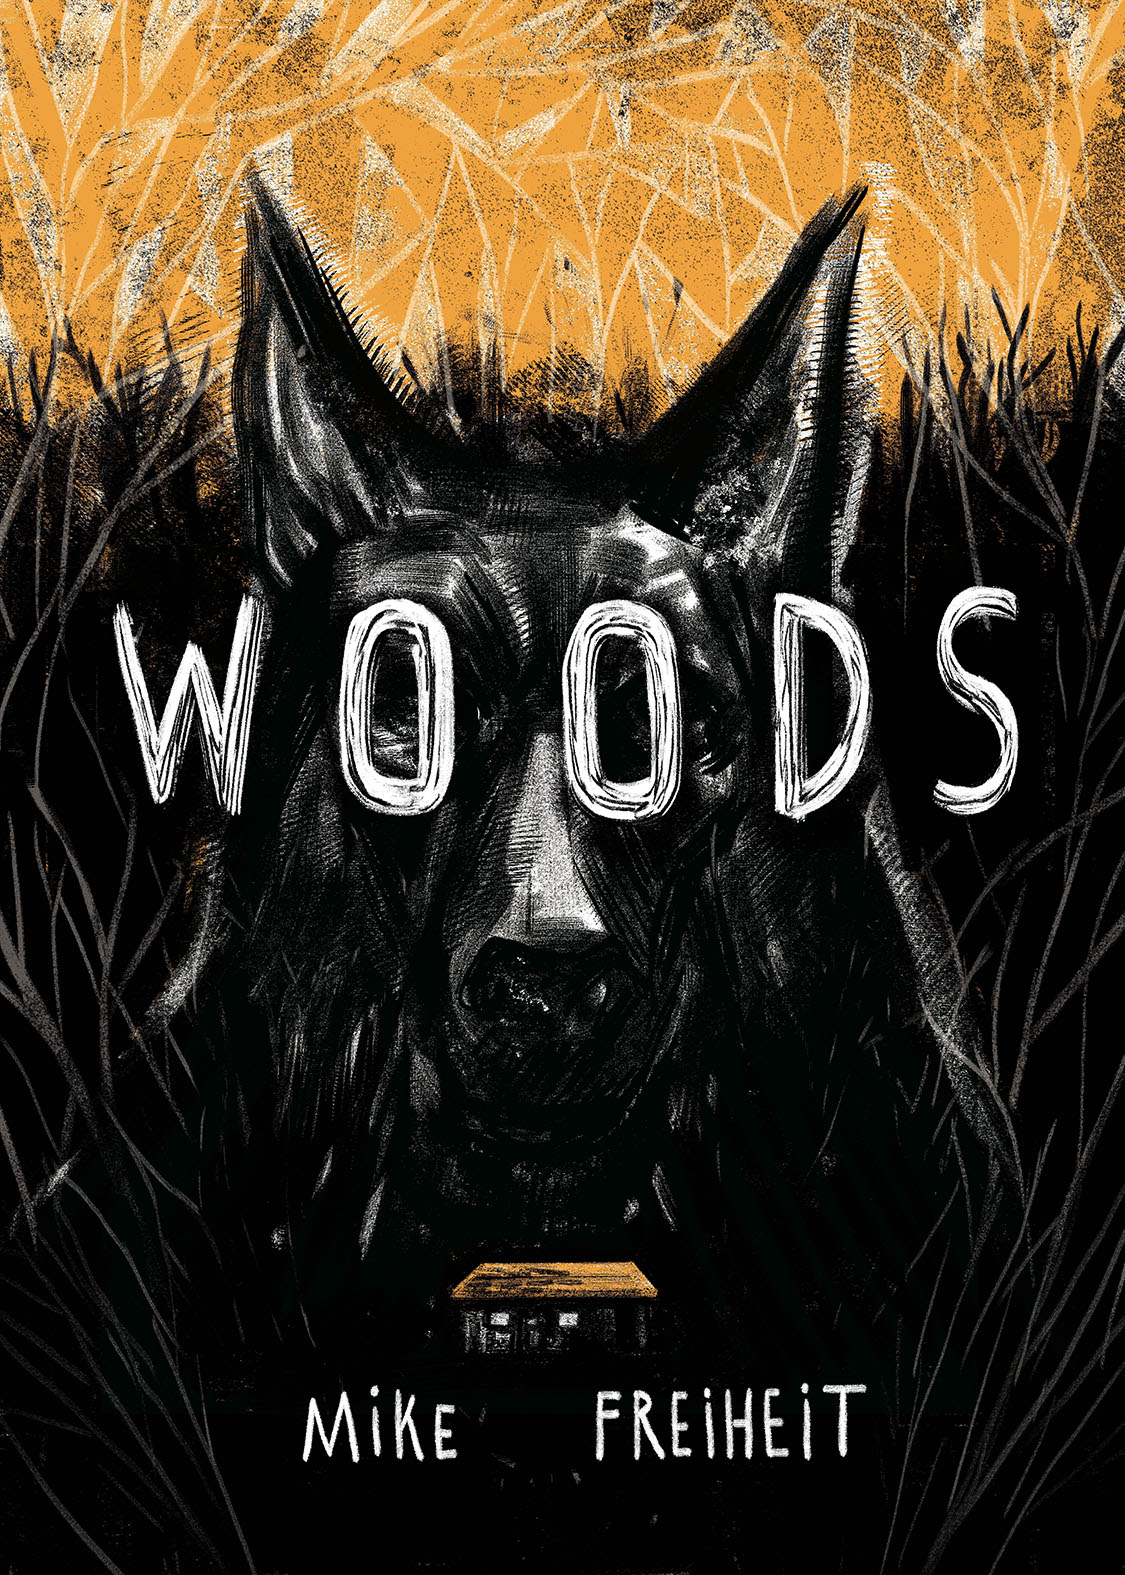 WOODS: A graphic novel by Mike Freiheit